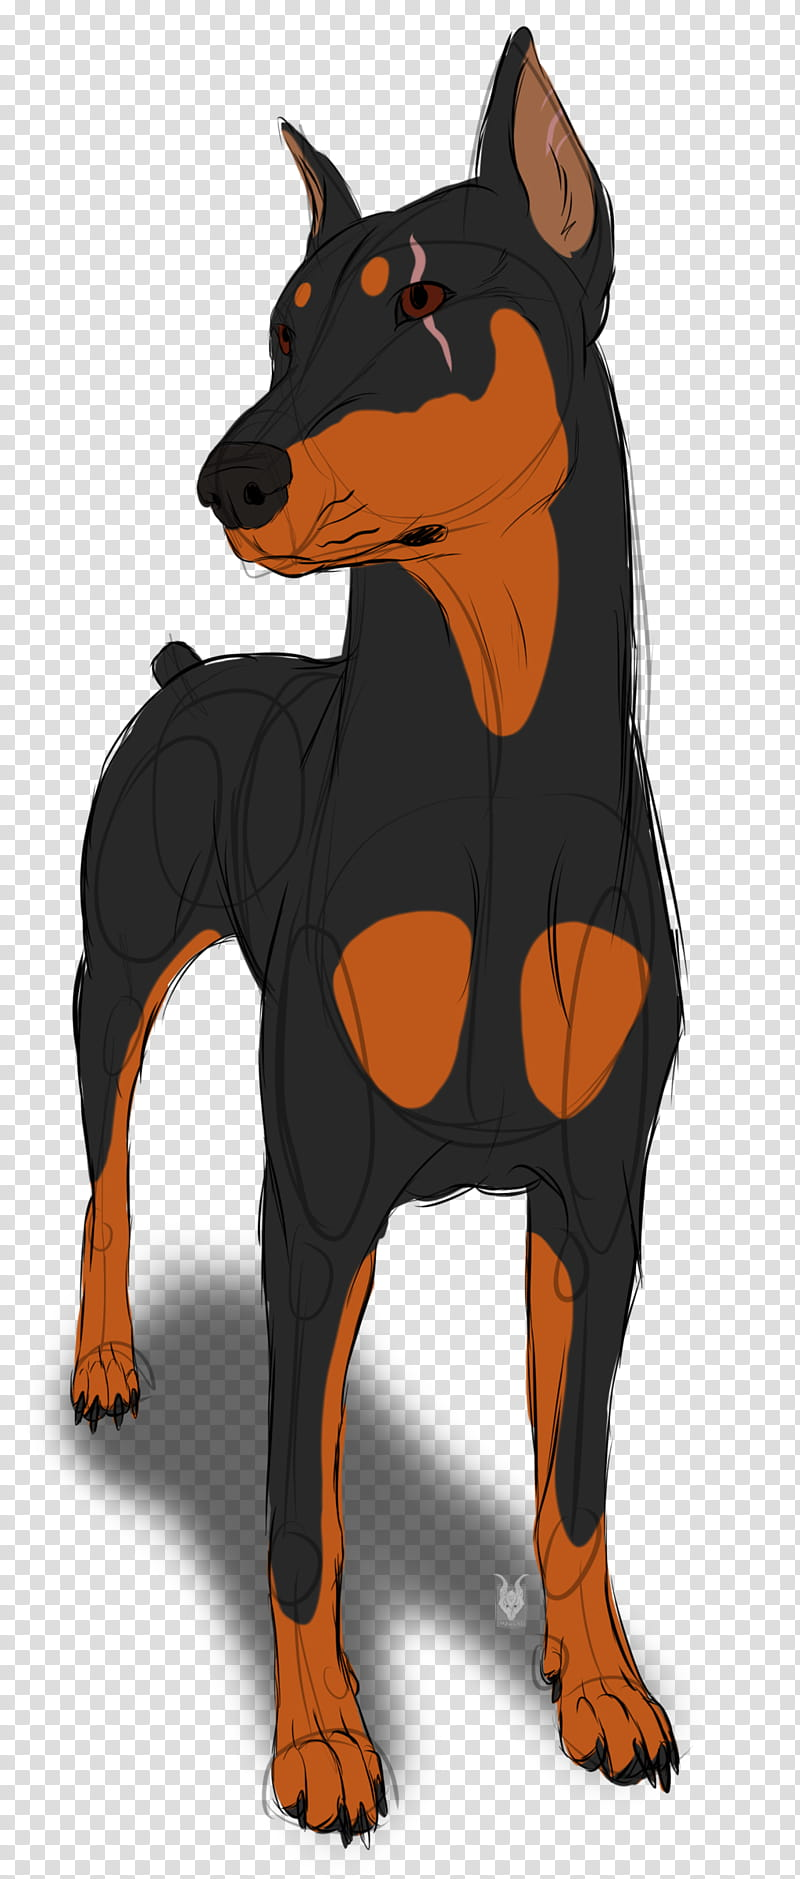 Cartoon Dog, Pinscher, Guard Dog, Miniature Pinscher, Breed.